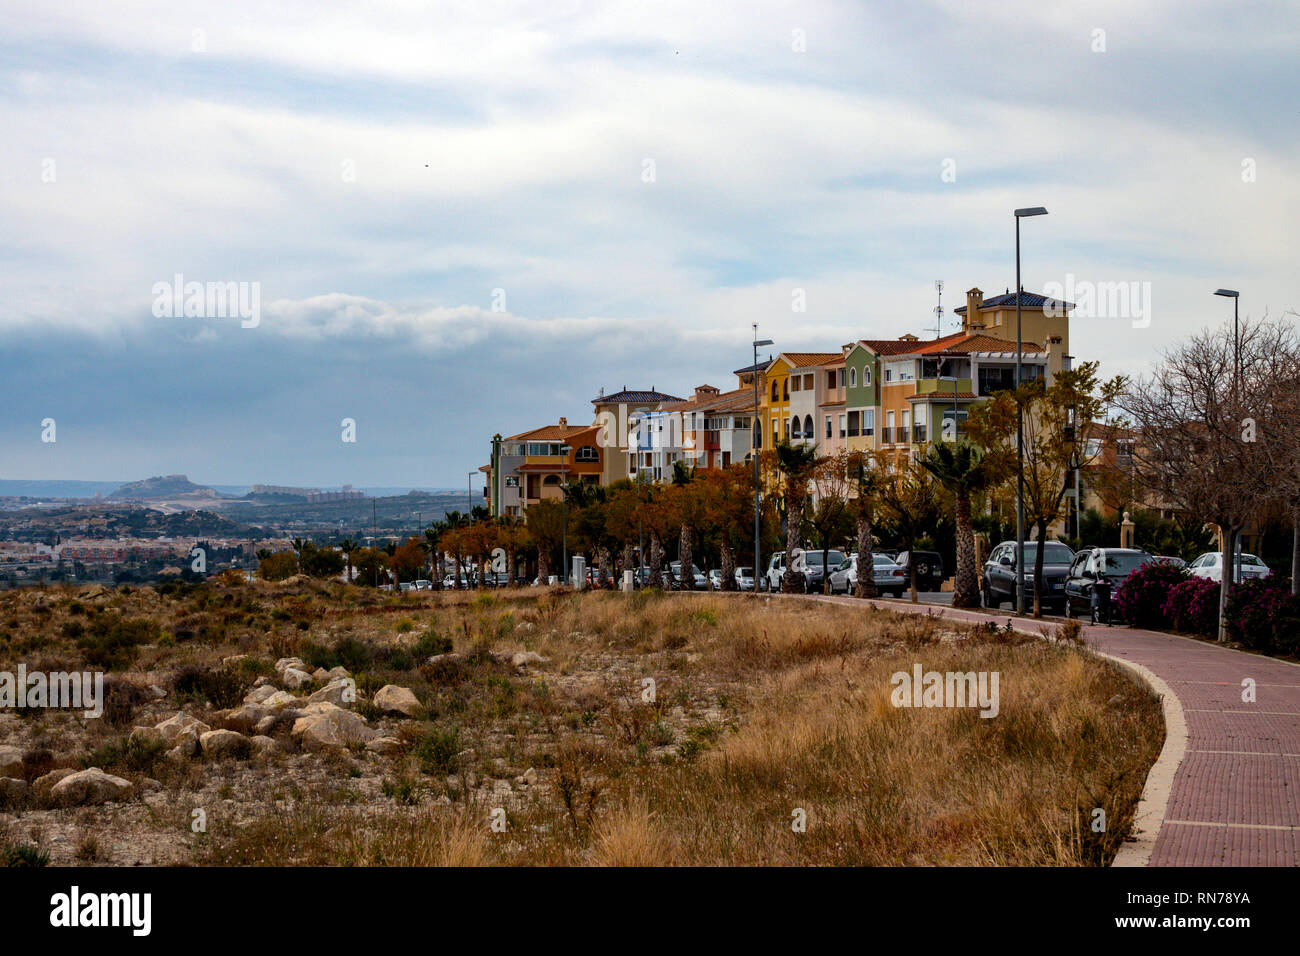 Bonalba golf resort and urbanisation, Mutxamel, Alicante, Costa Banca, Spain - Stock Image